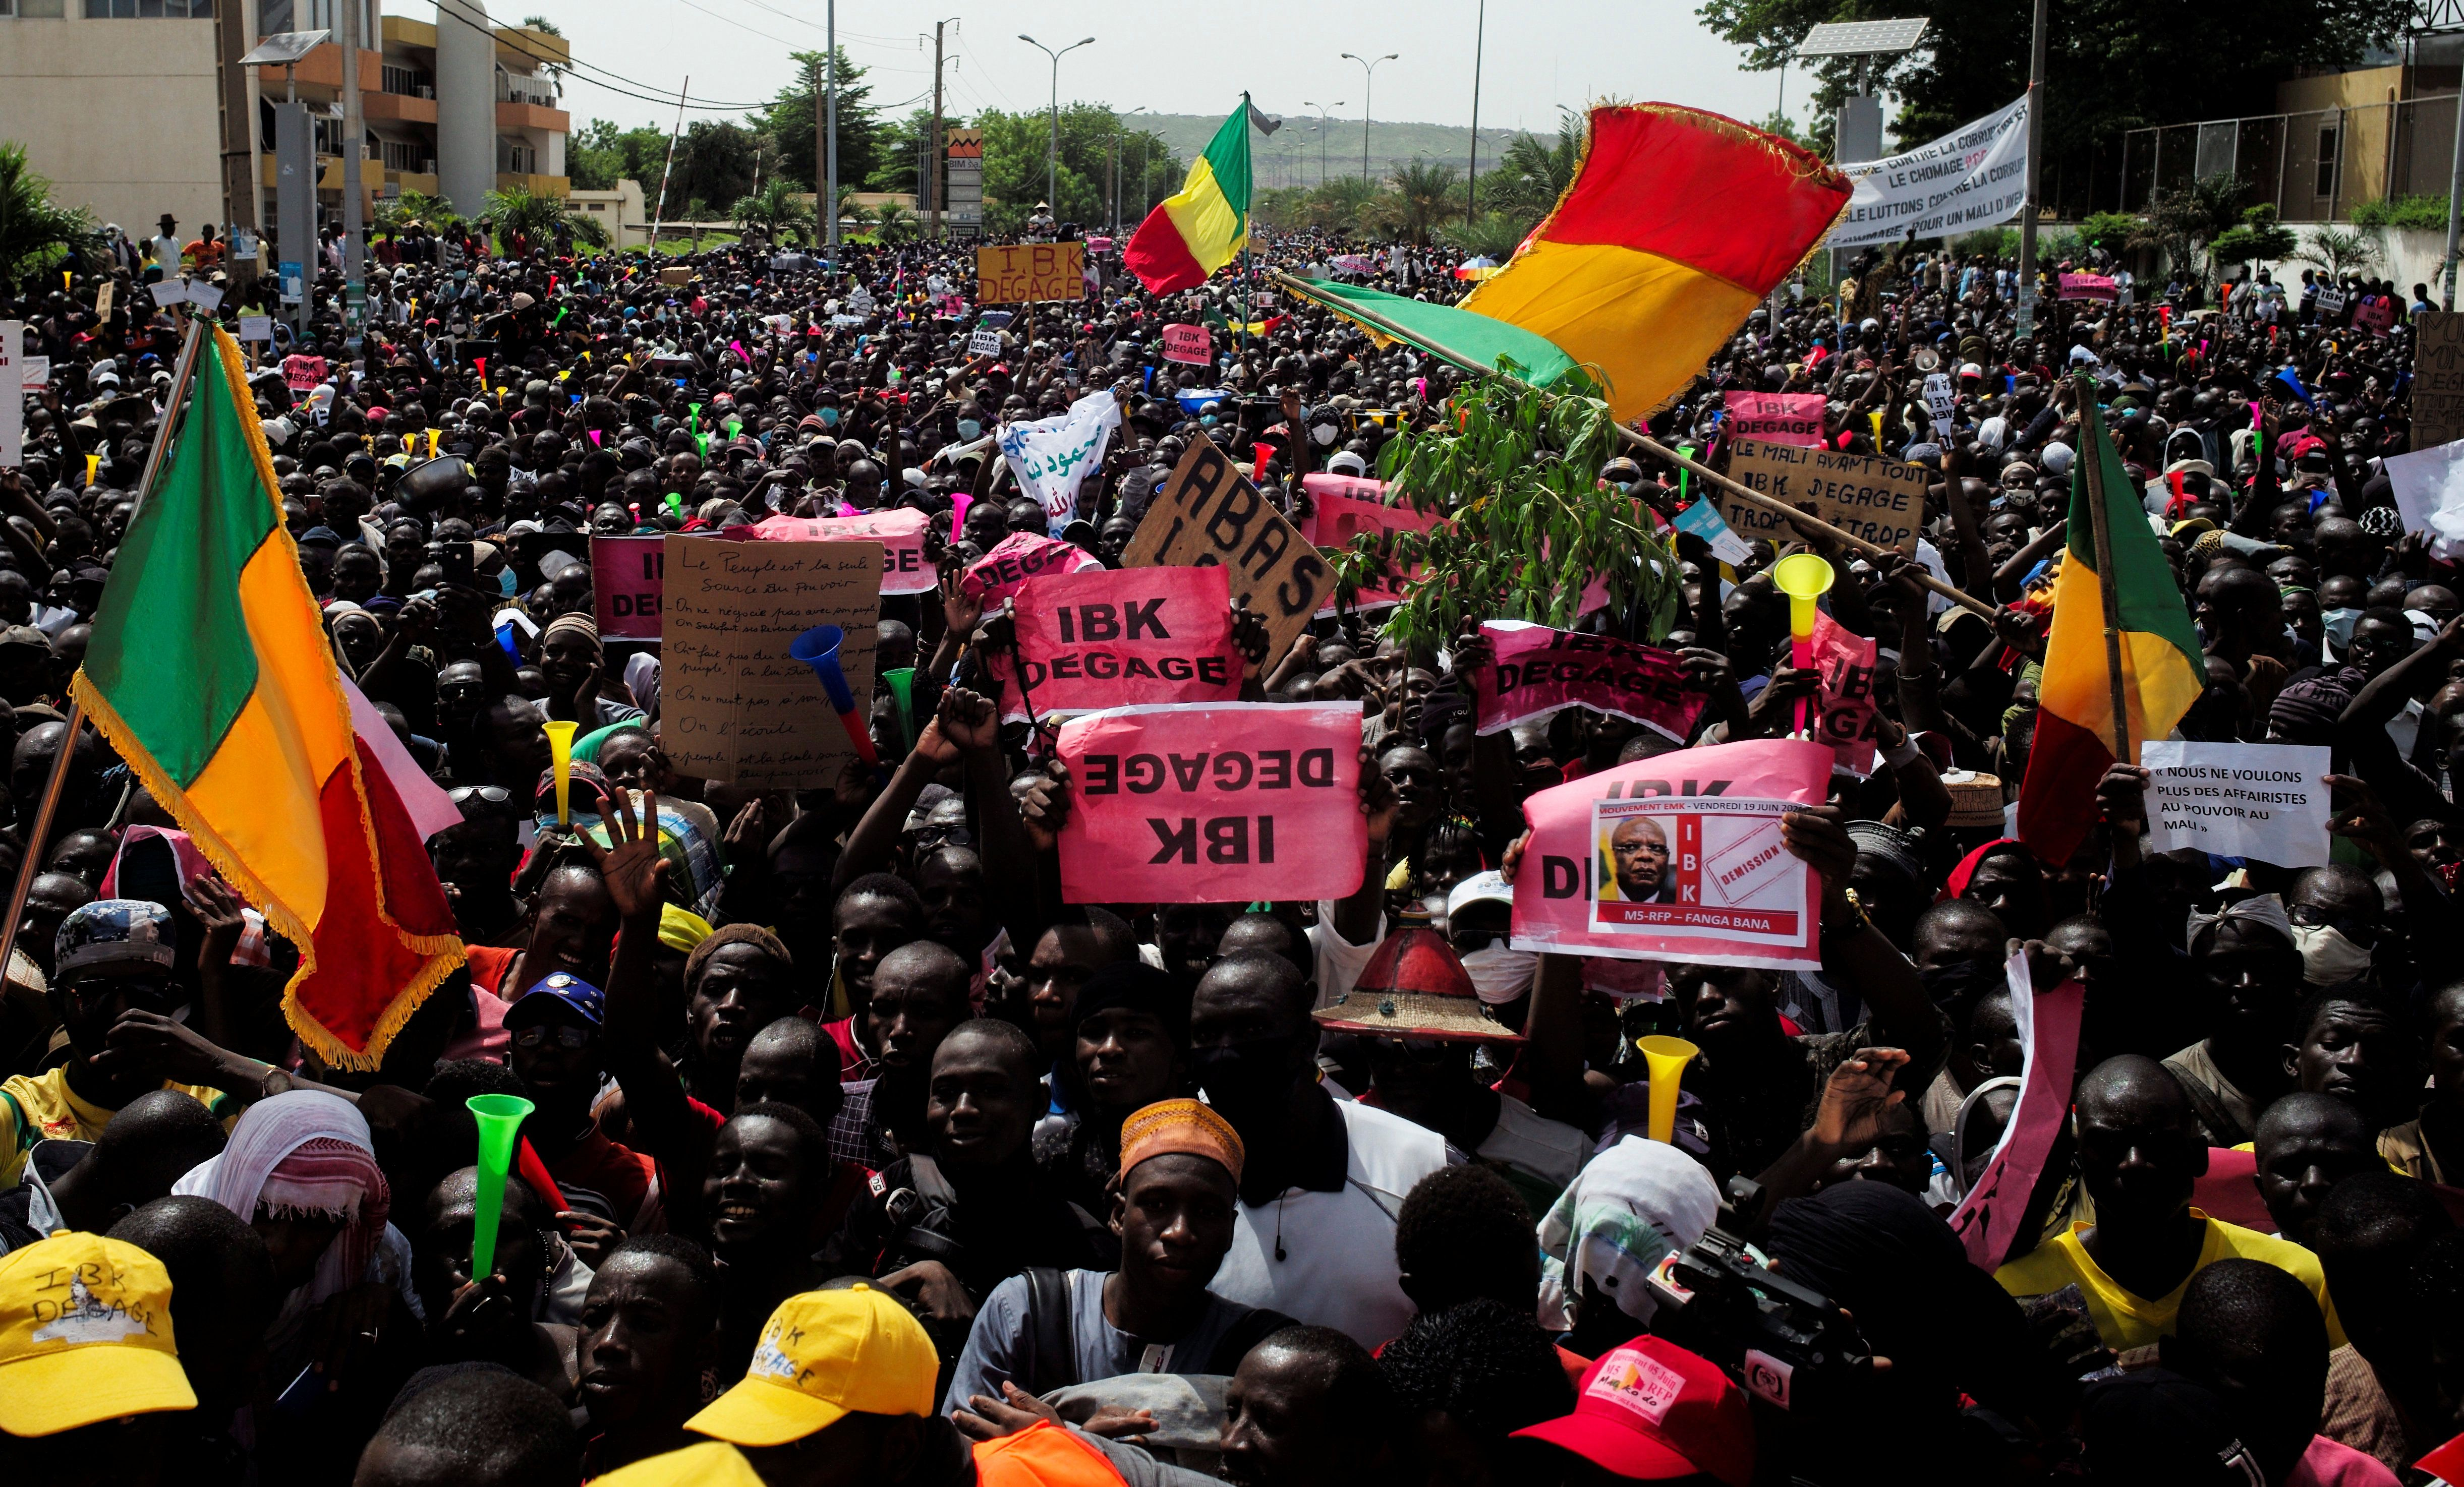 What We're Watching: Mali's protests, Israel's annexation, Poland's election